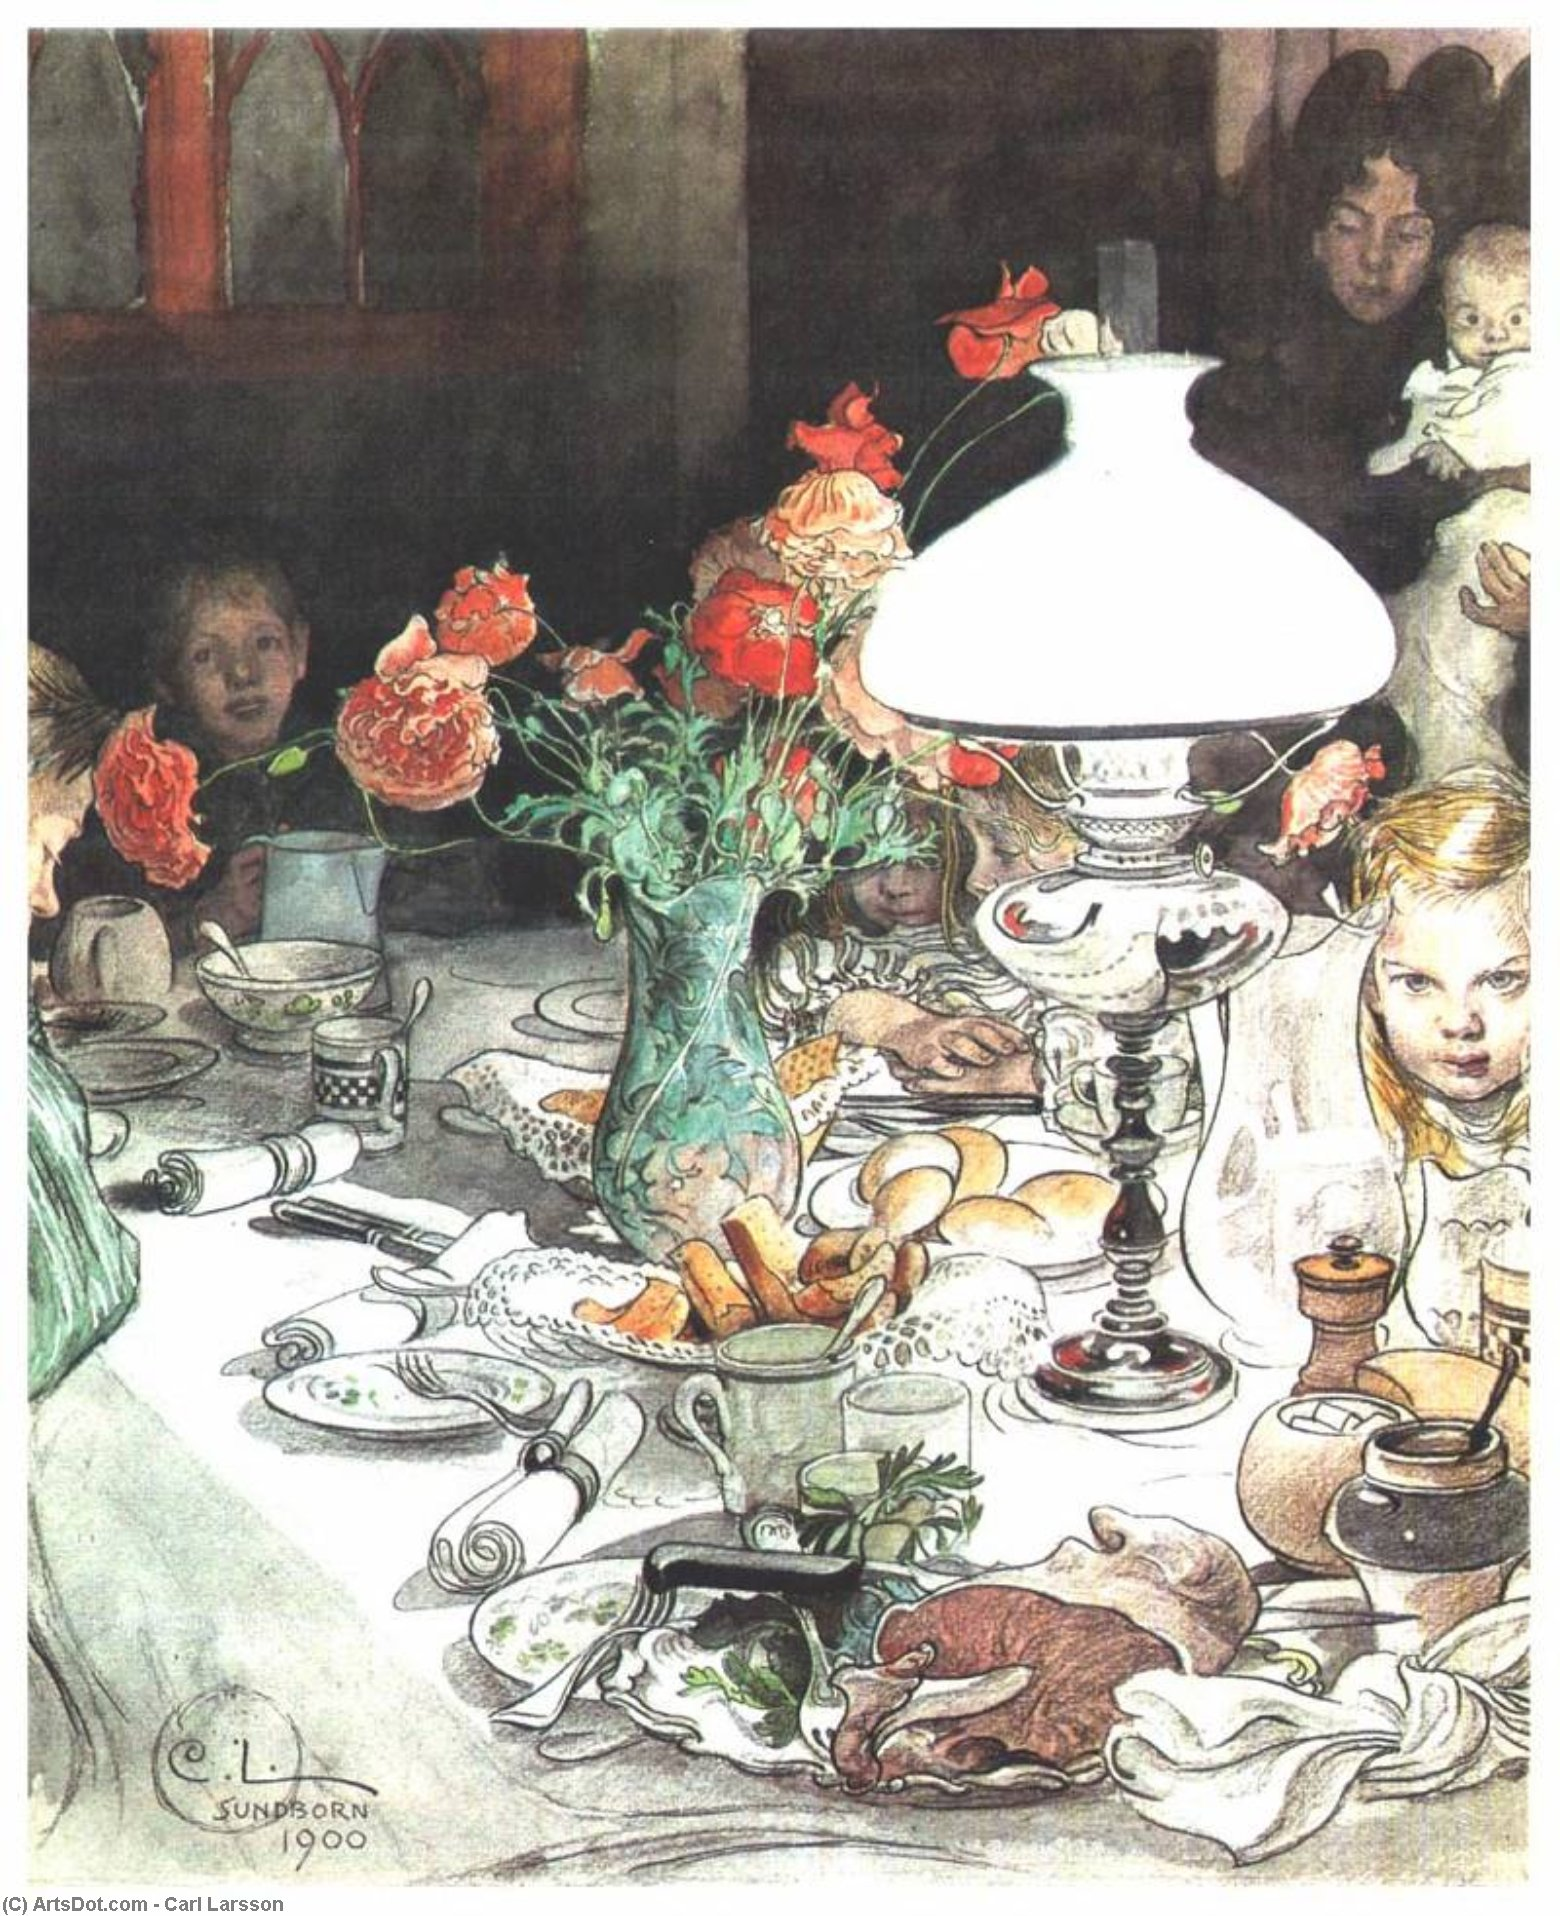 Around the lamp at evening, 1900 by Carl Larsson (1919-1919, Sweden) | Museum Quality Copies Carl Larsson | ArtsDot.com